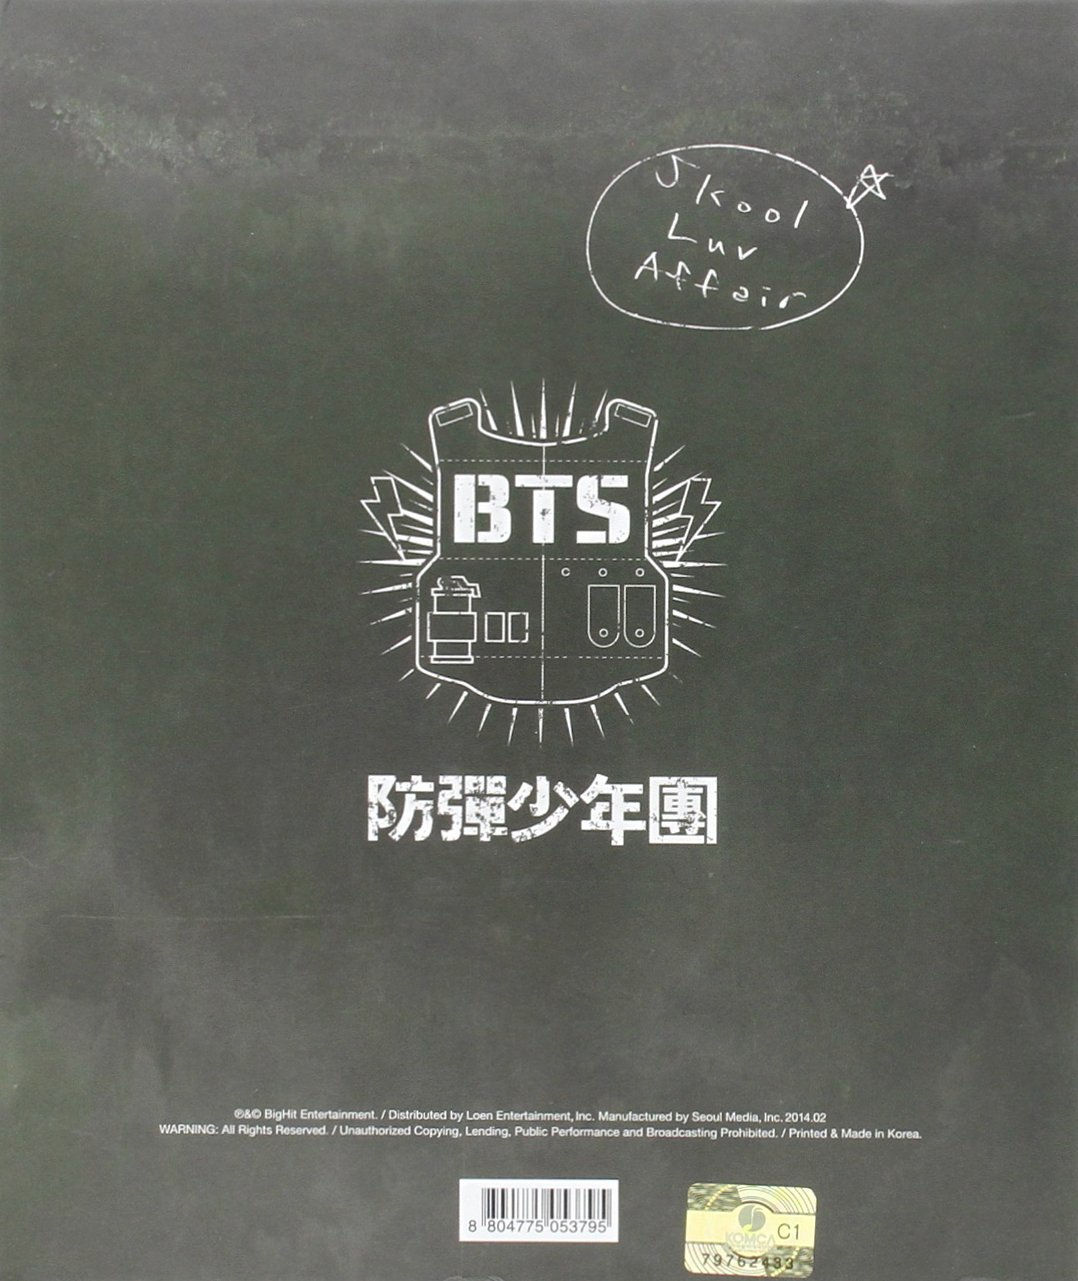 Skool Luv Affair (Incl. 115-page photobook and one random photocard) by Imports